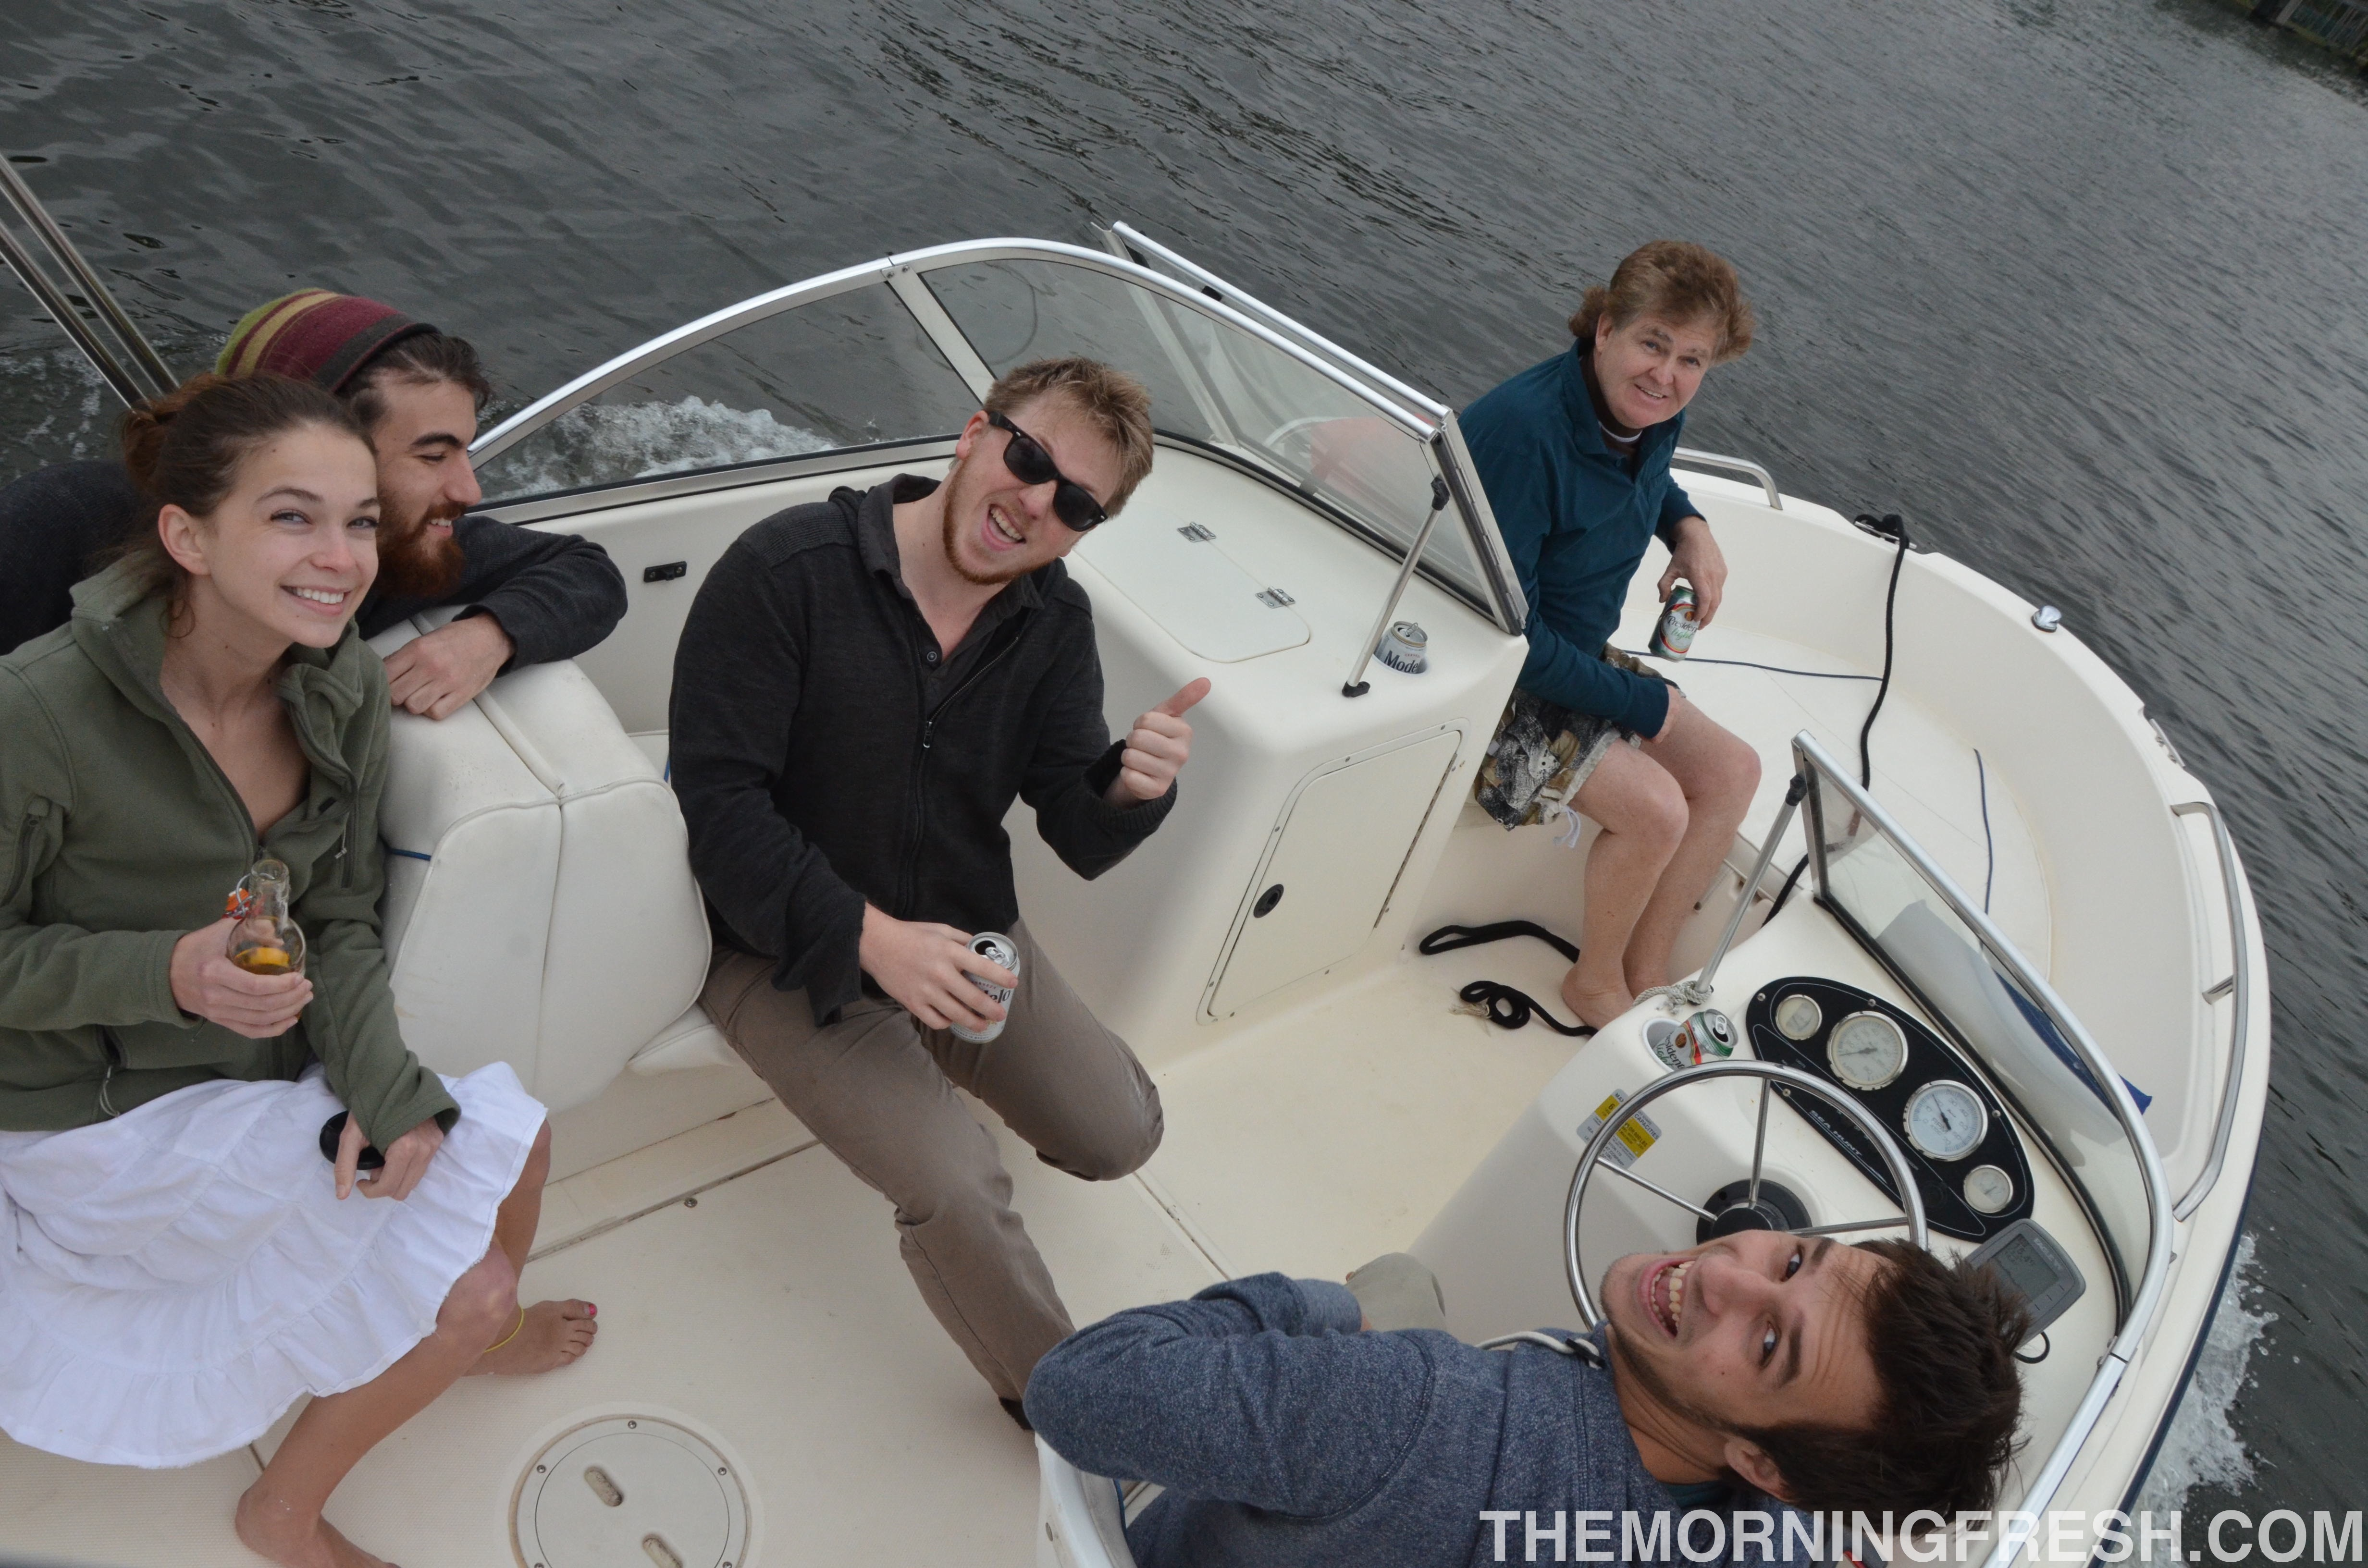 The crew sailing along the Miami River during my farewell visit to my hometown.